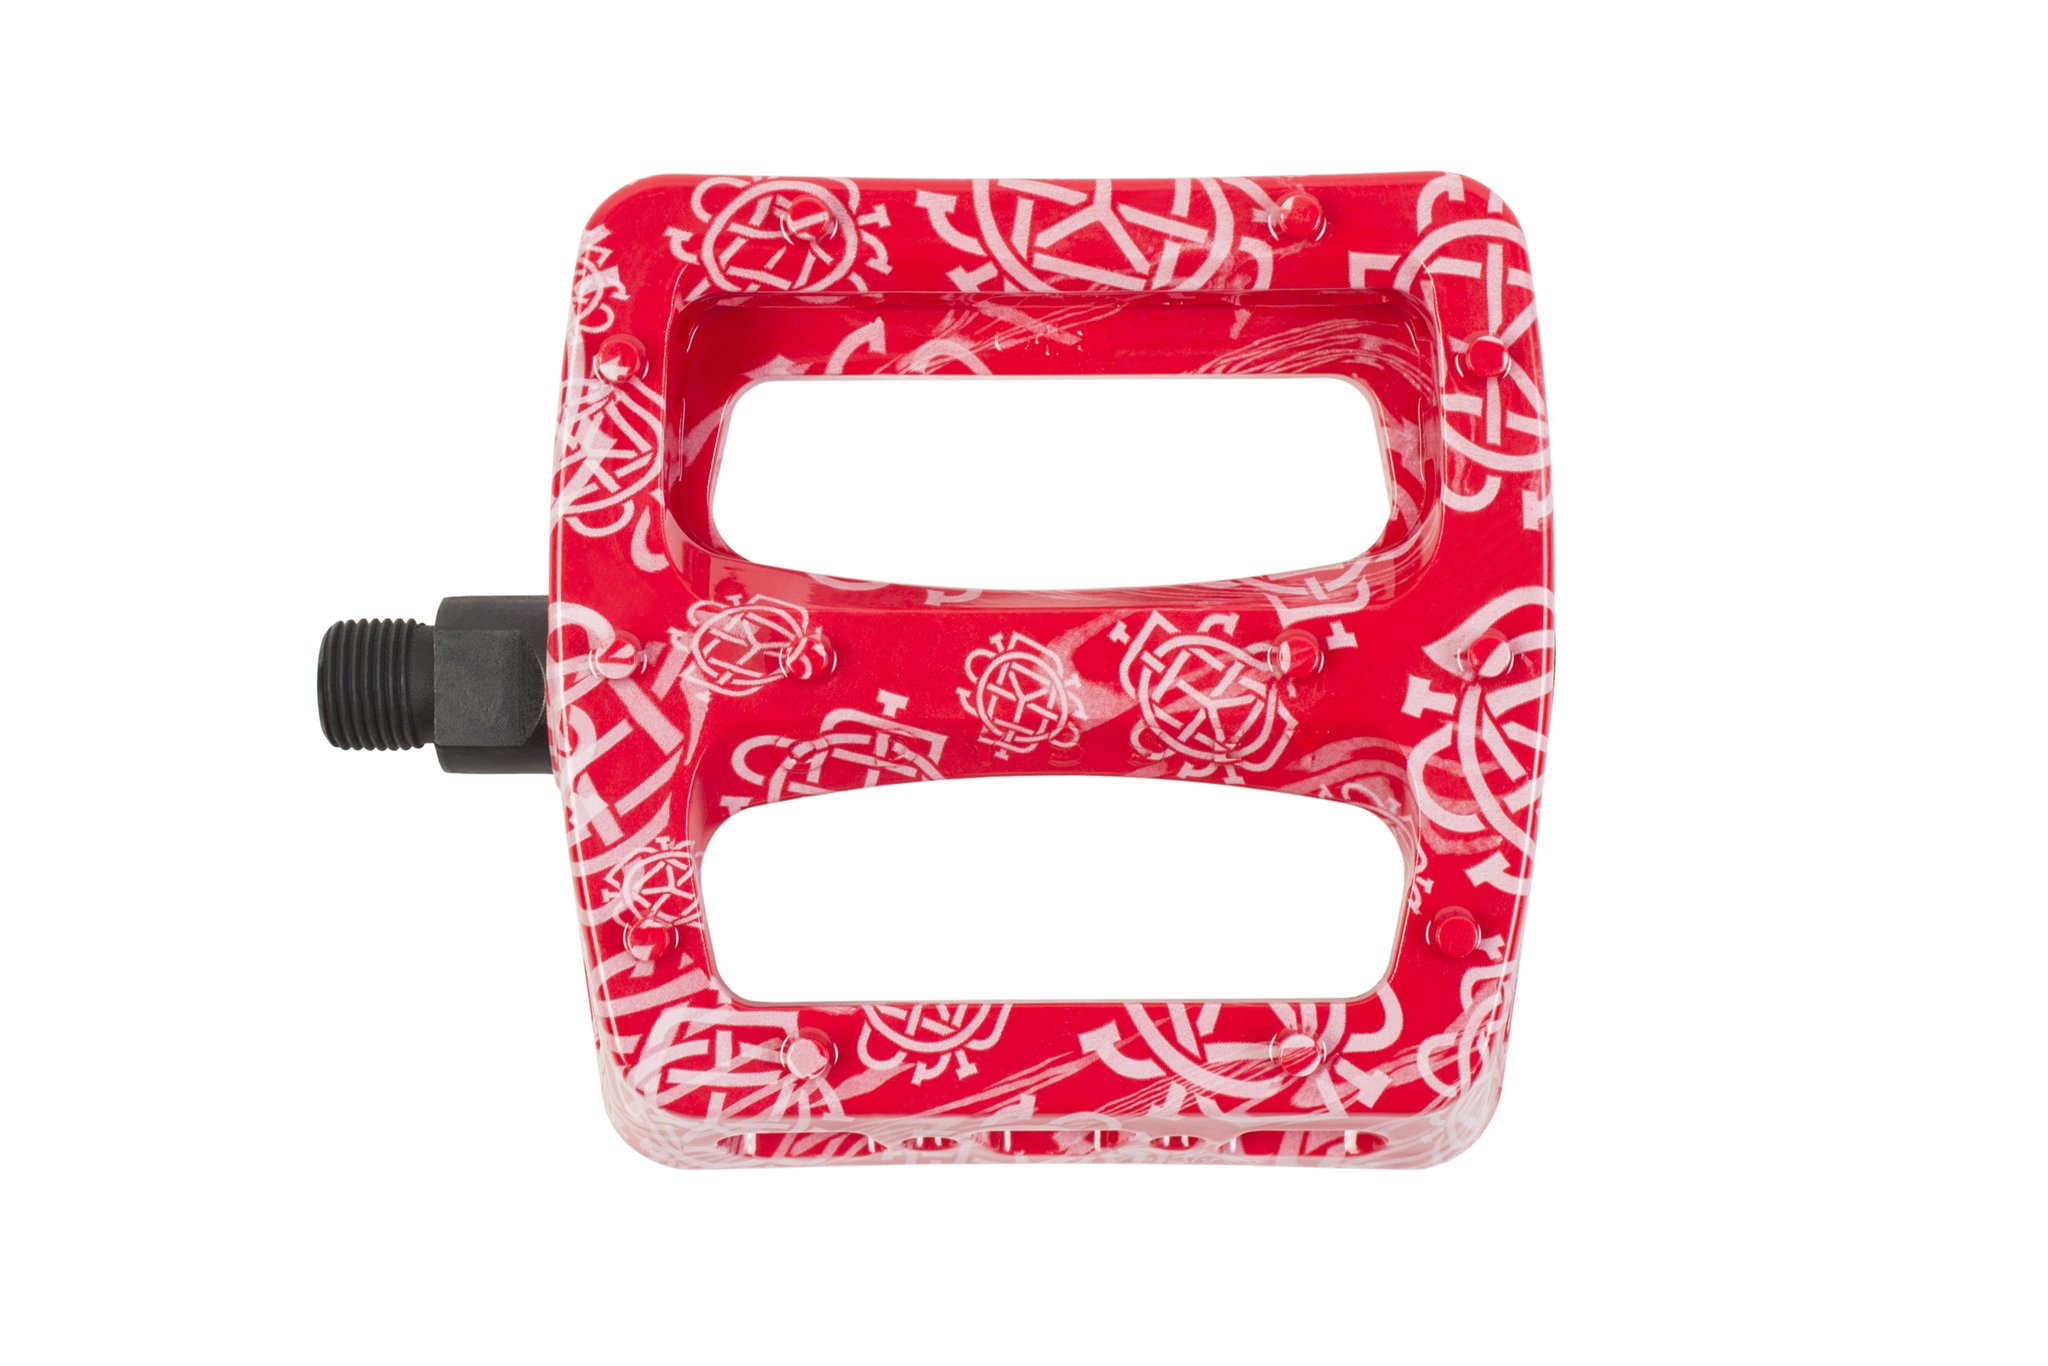 Odyssey Twisted Pro Pedali   Colore Monogram Pattern Red